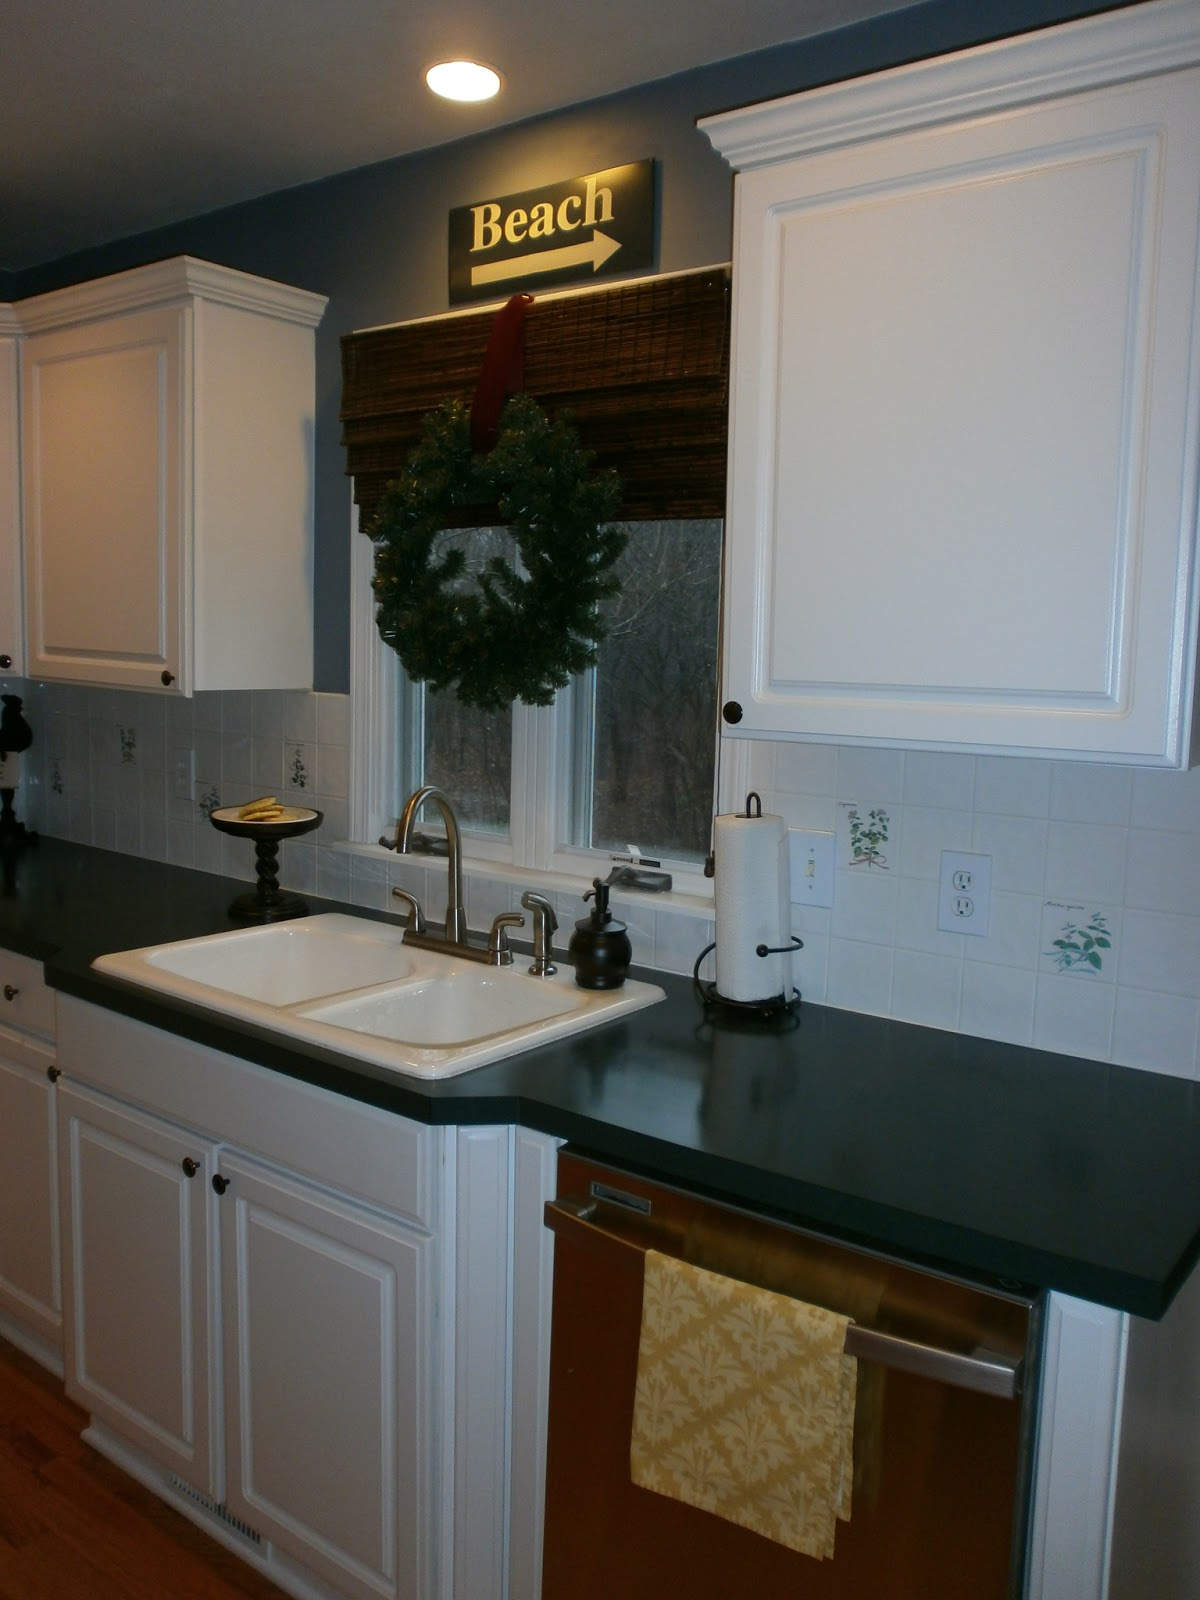 Used Kitchen Cabinets York Region Diy Painting A Ceramic Tile Backsplash